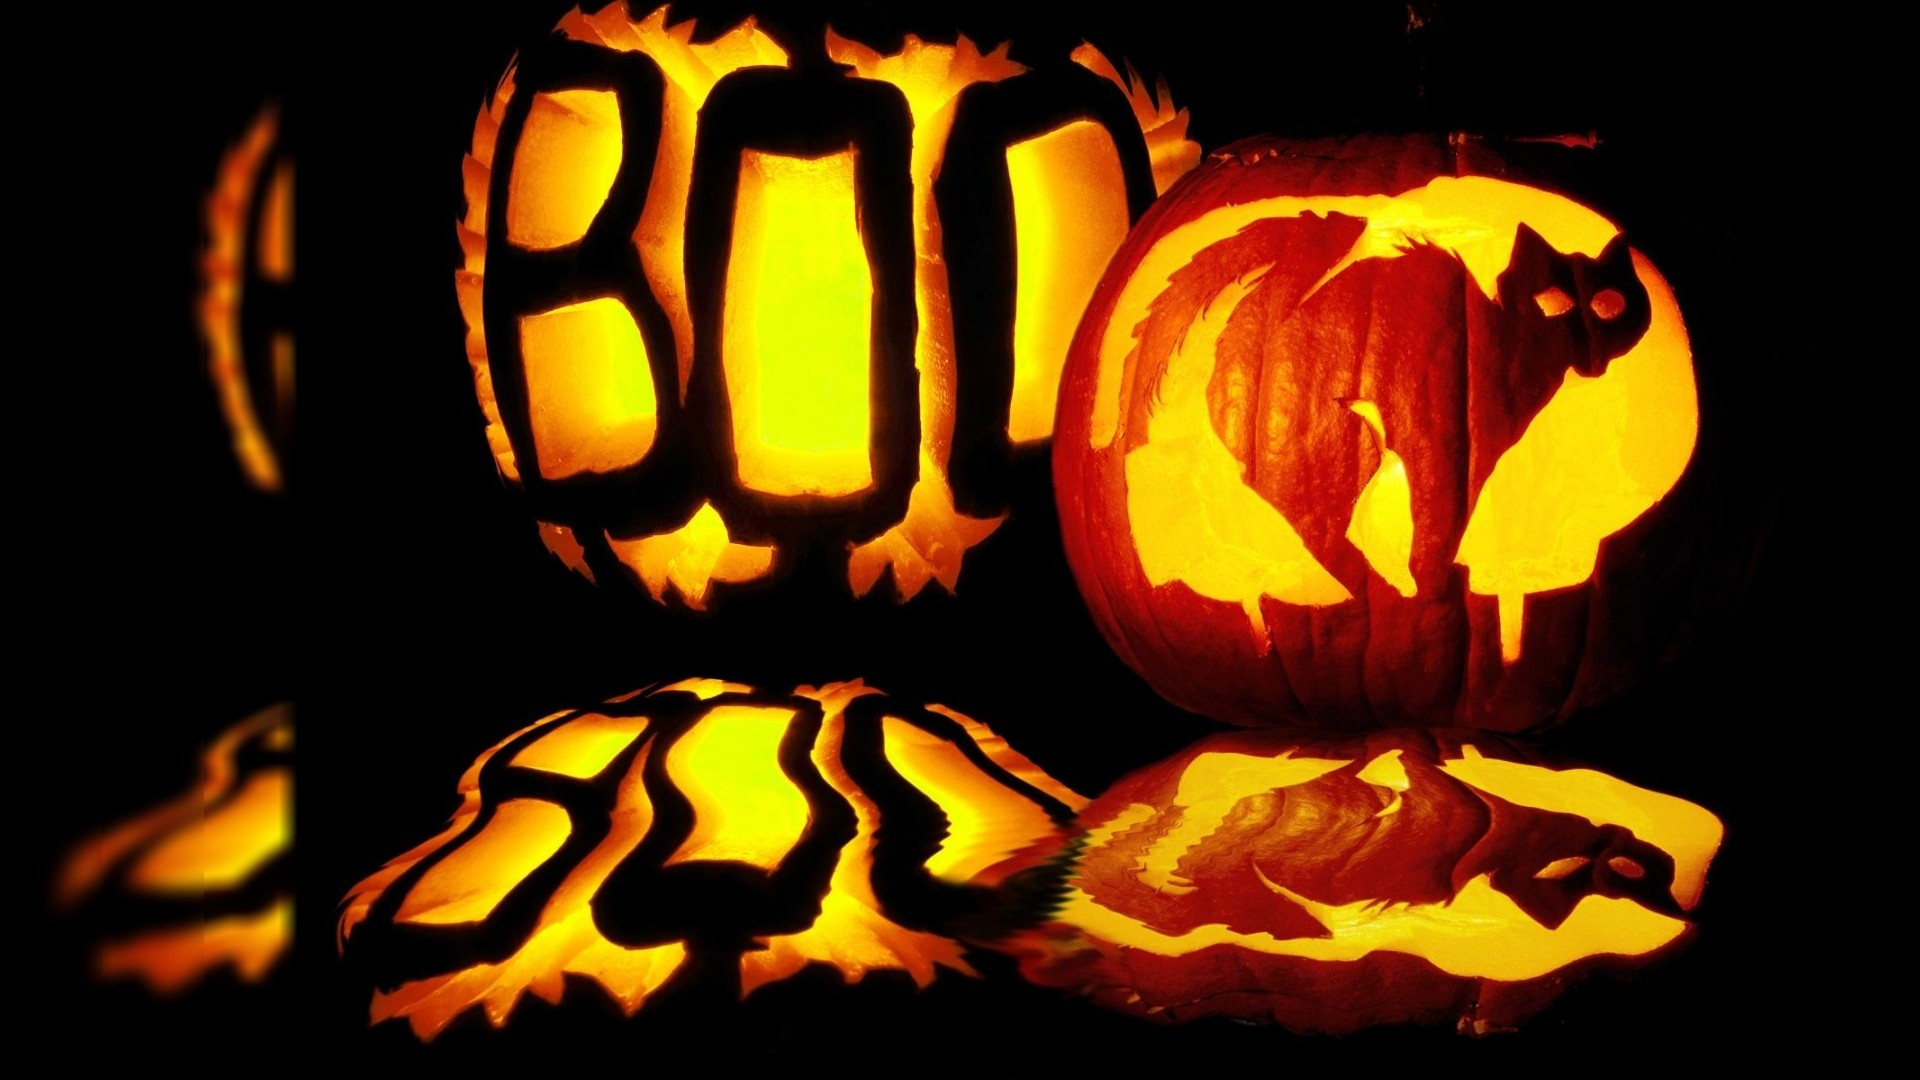 Top Wallpaper Halloween Smartphone - 150867-halloween-backgrounds-desktop-1920x1080-smartphone  Collection_351354.jpg